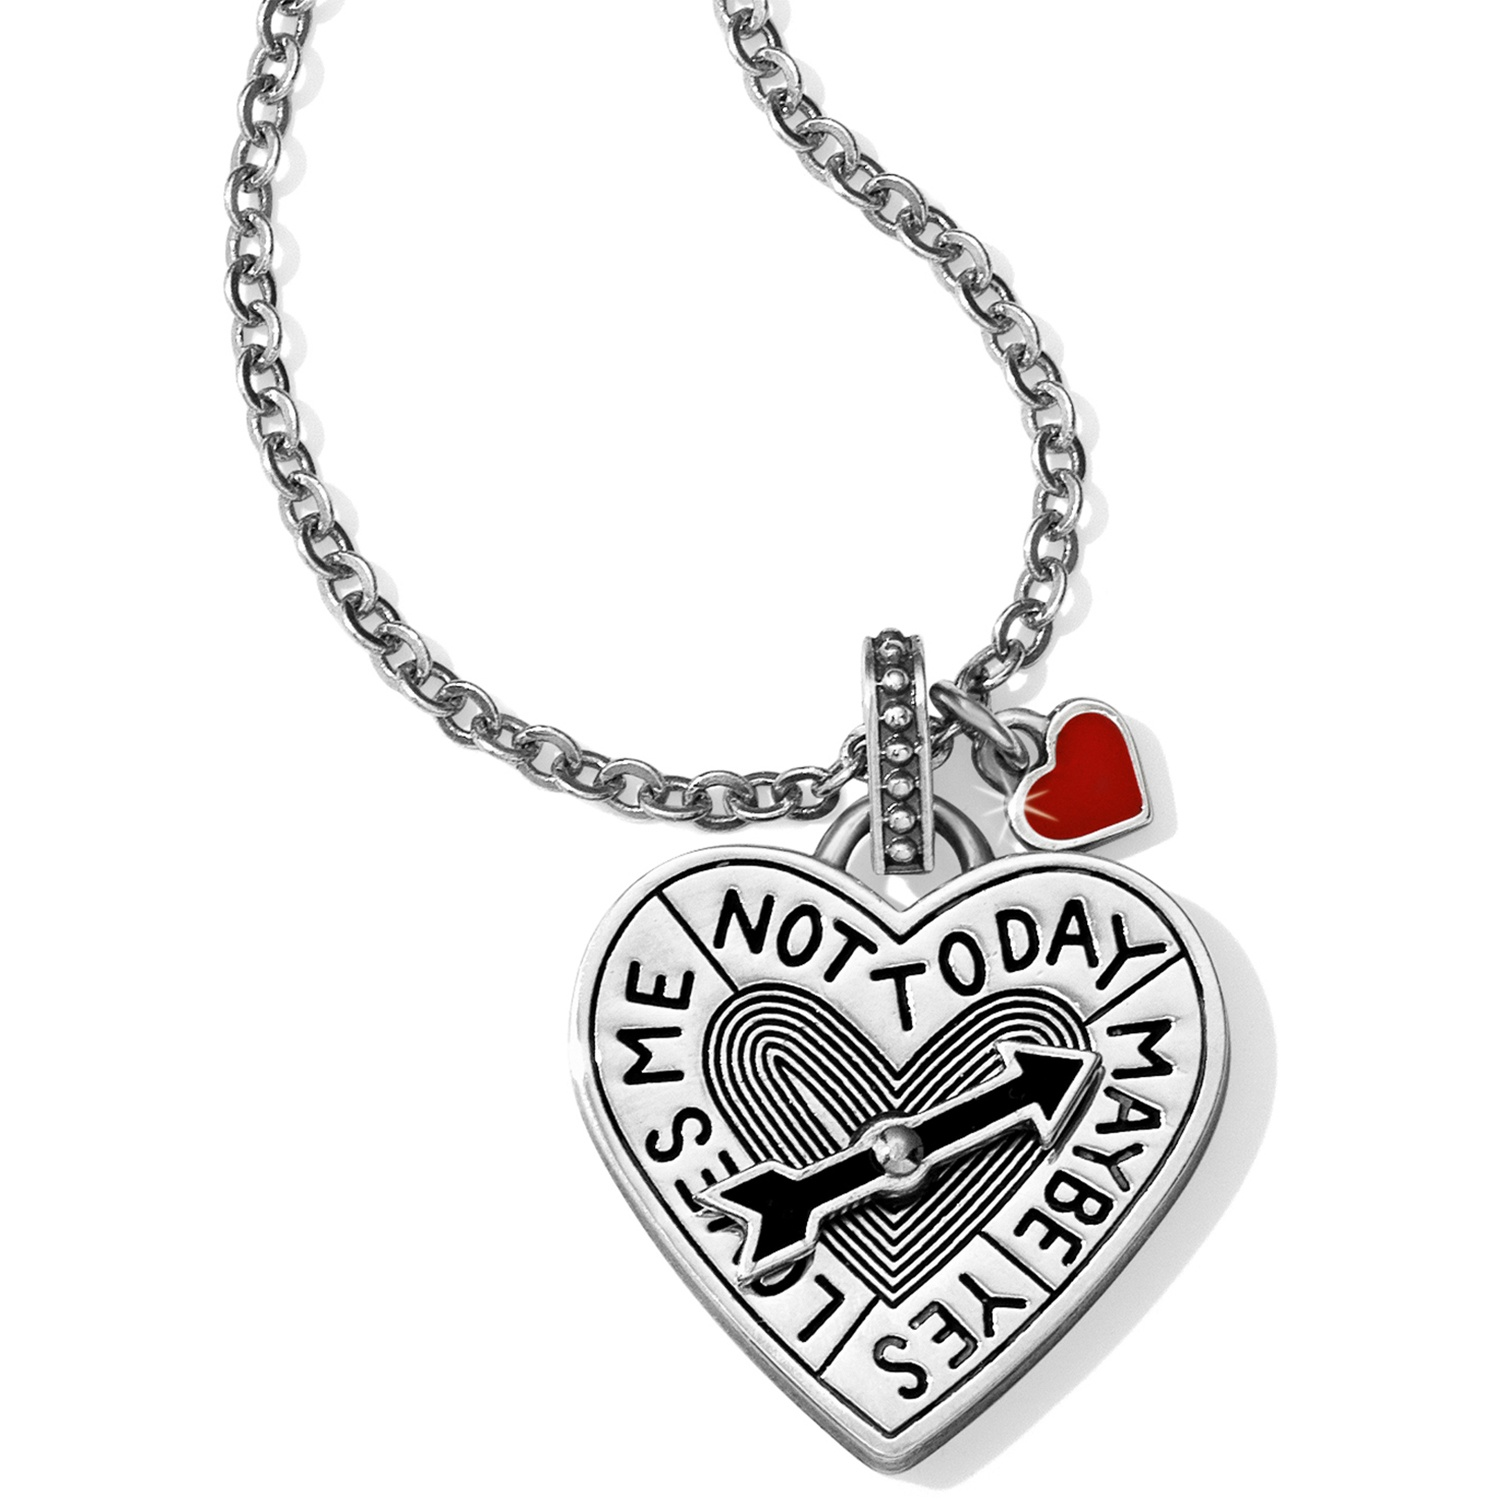 Labyrinth Cupid S Heart Necklace Necklaces